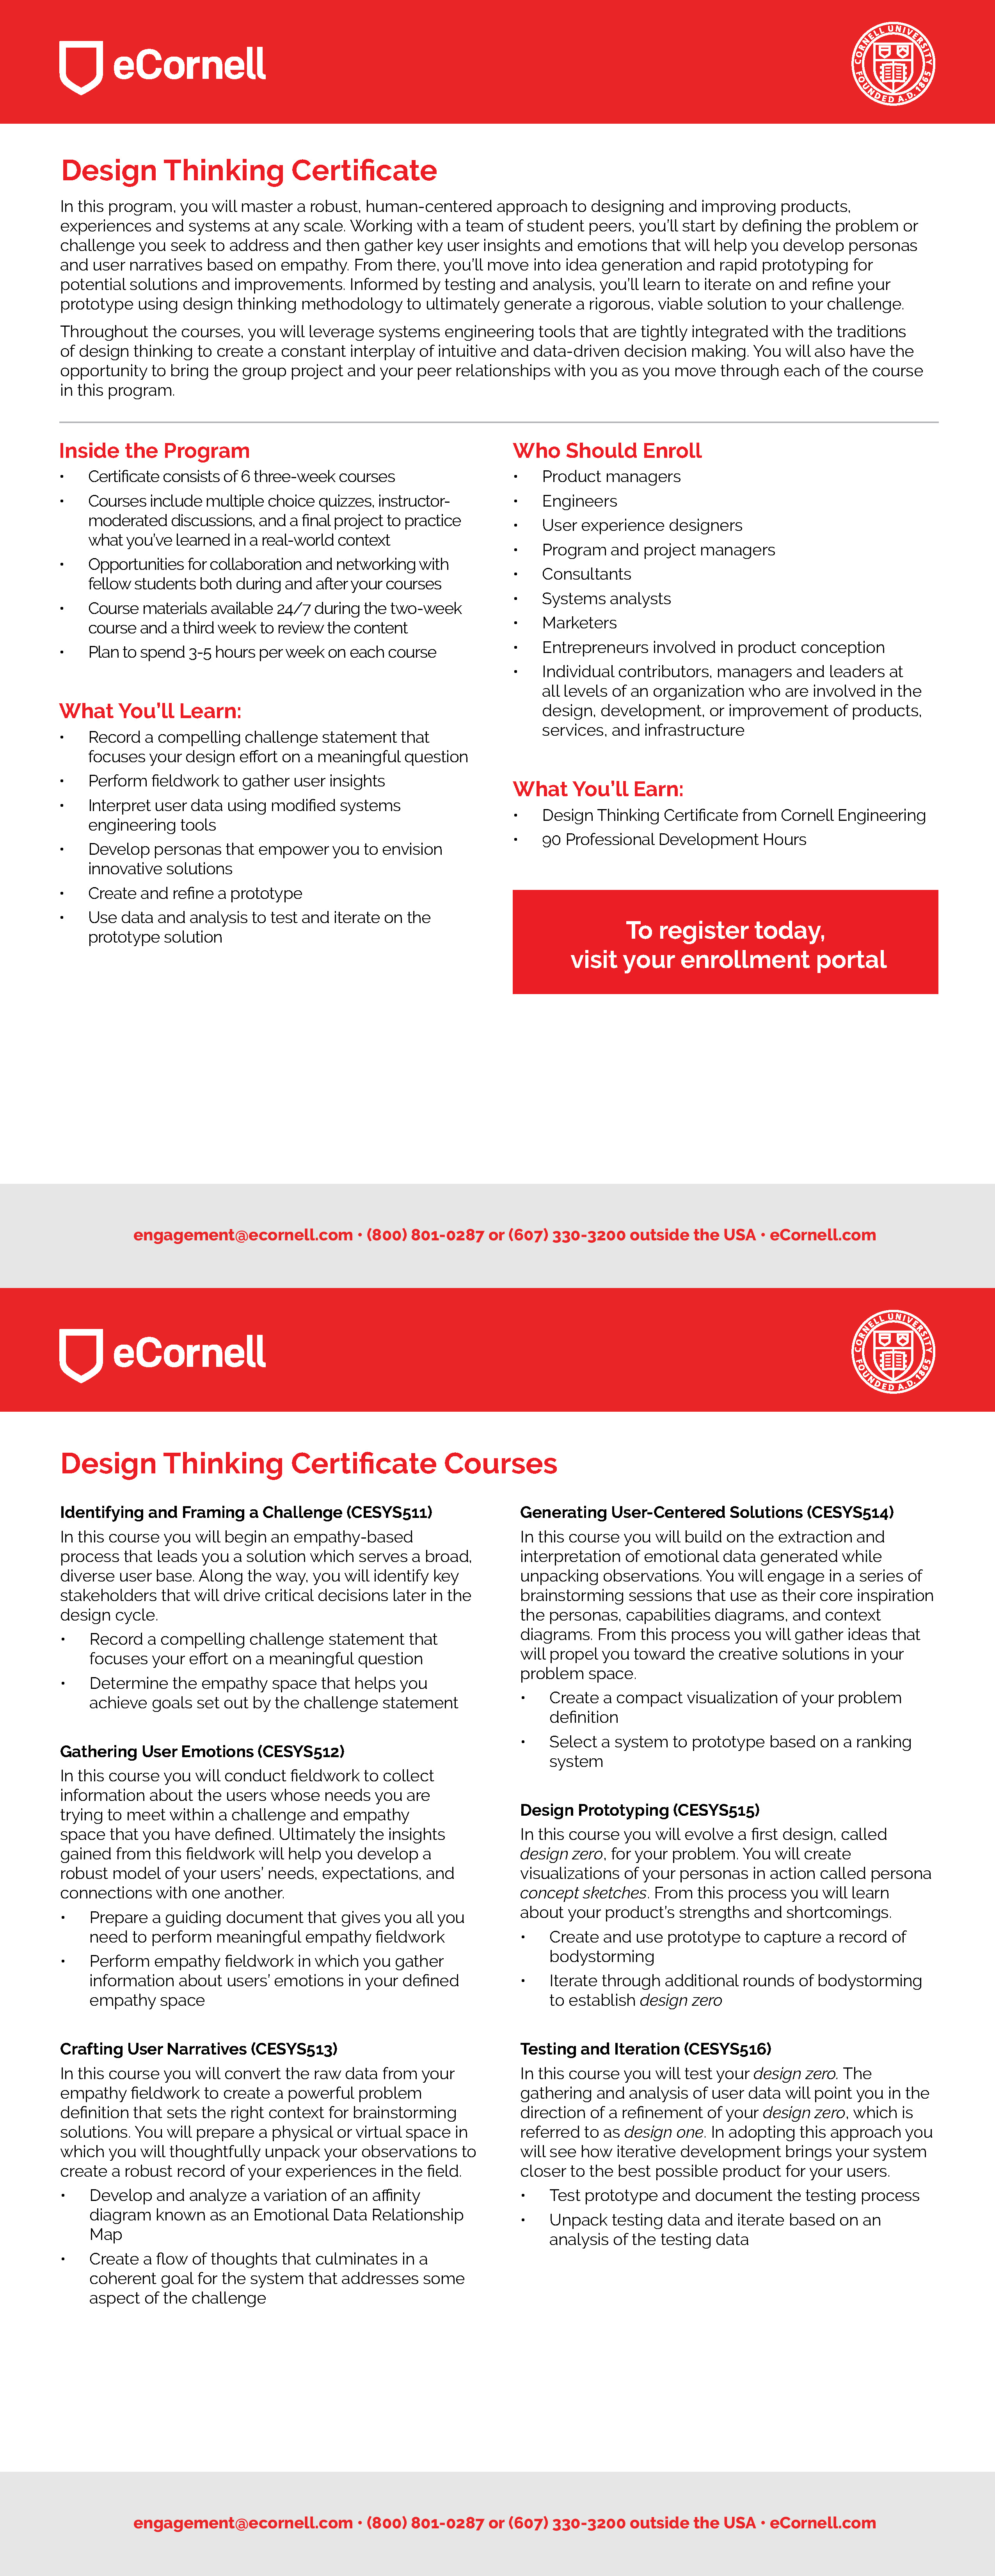 Design Thinking Flyer for Corporations